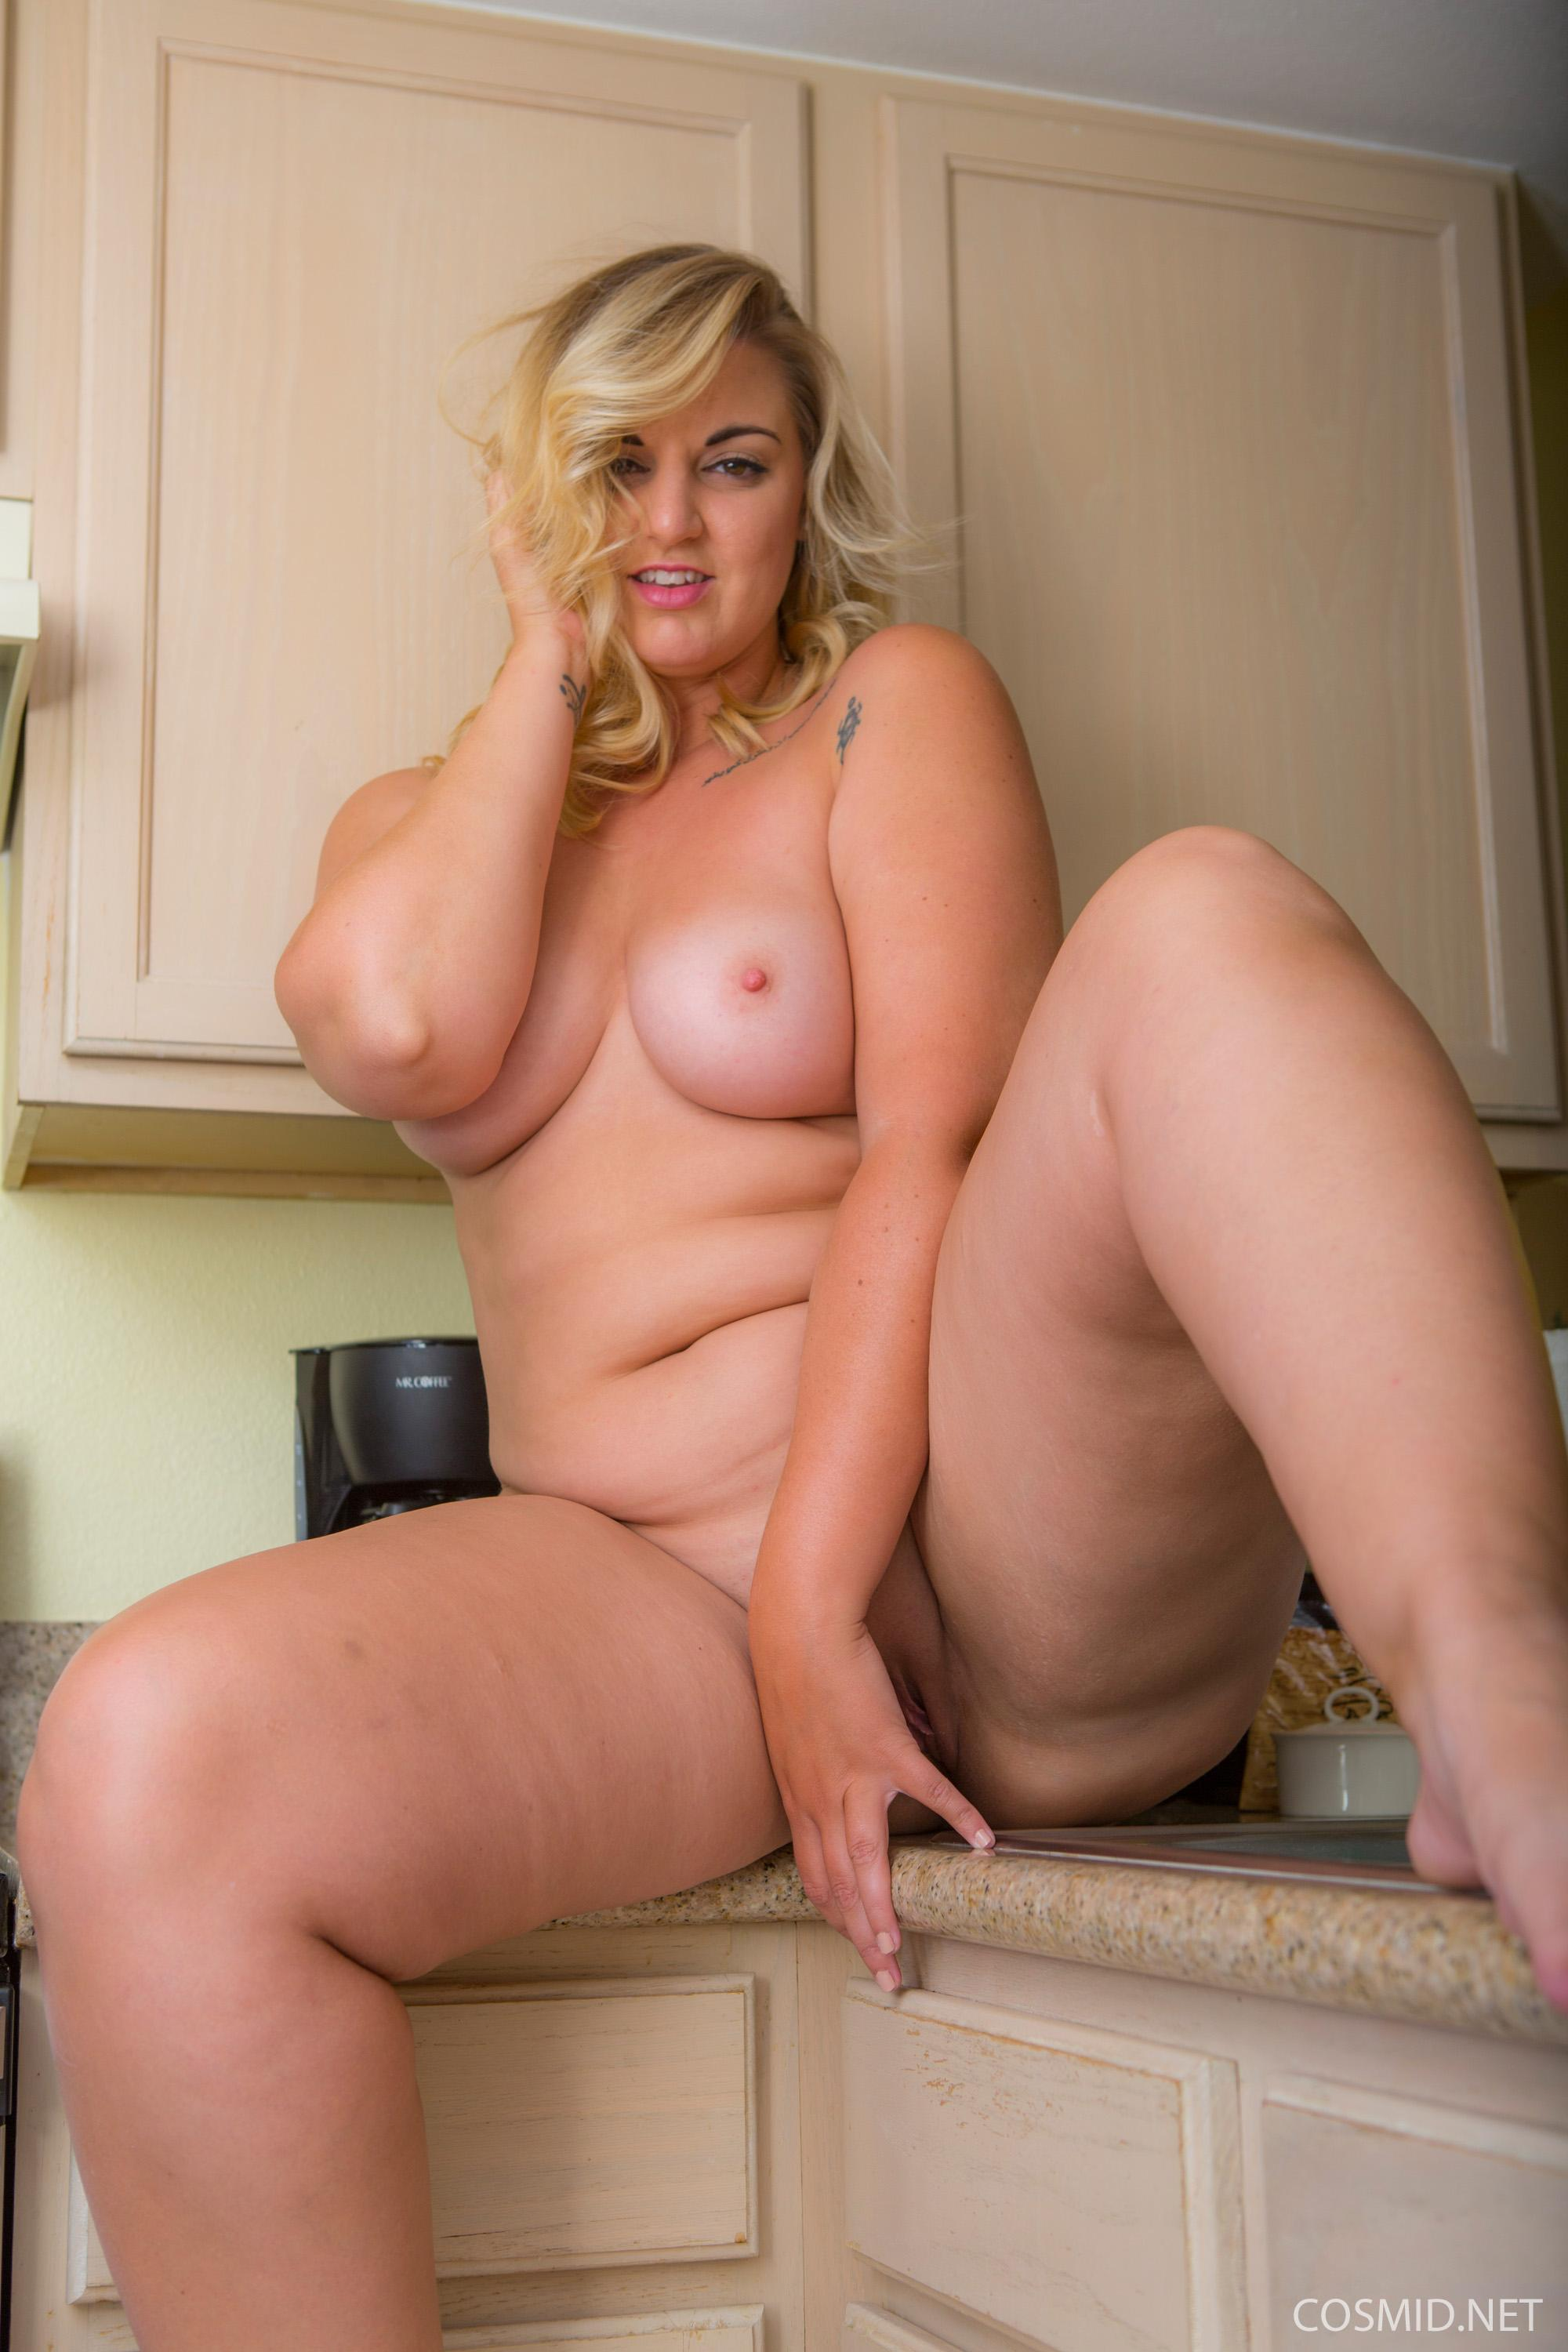 Busty Girl Carrie Gets Naked For You In The Kitchen  Coed -8343